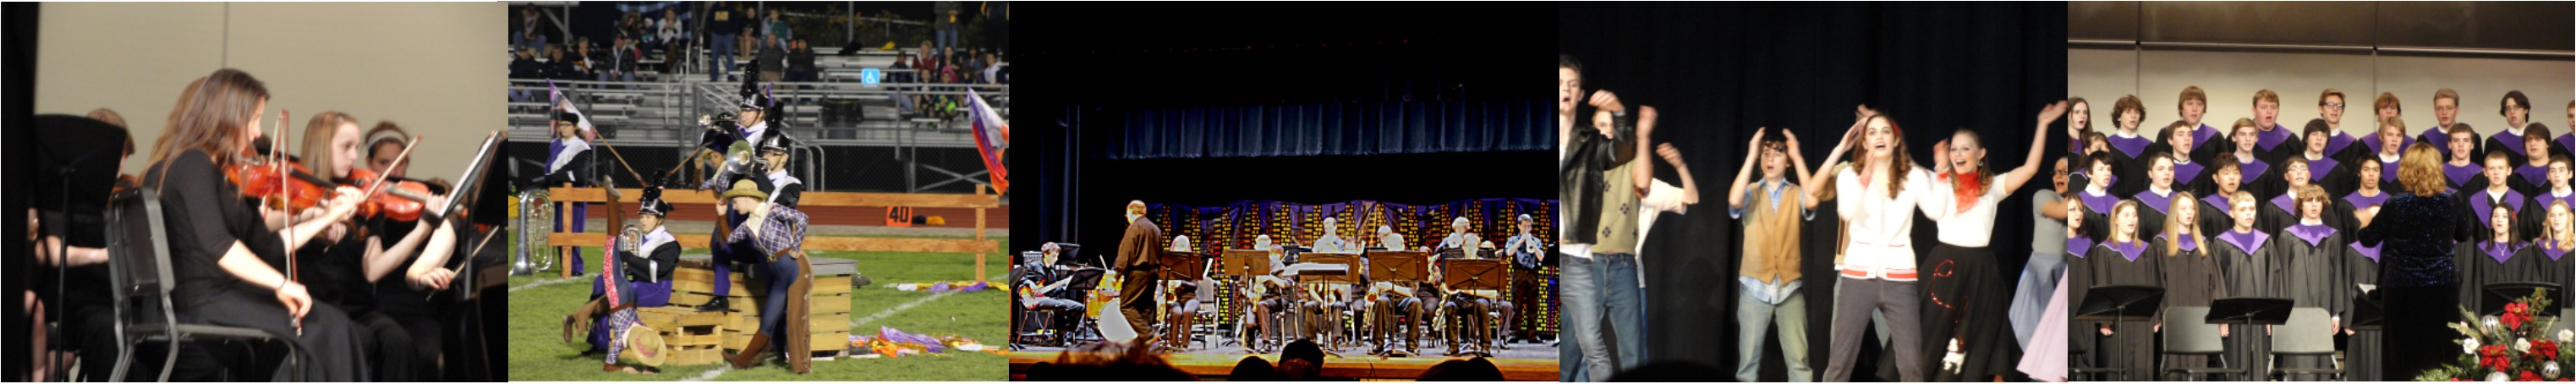 Northern Music Boosters header image 3